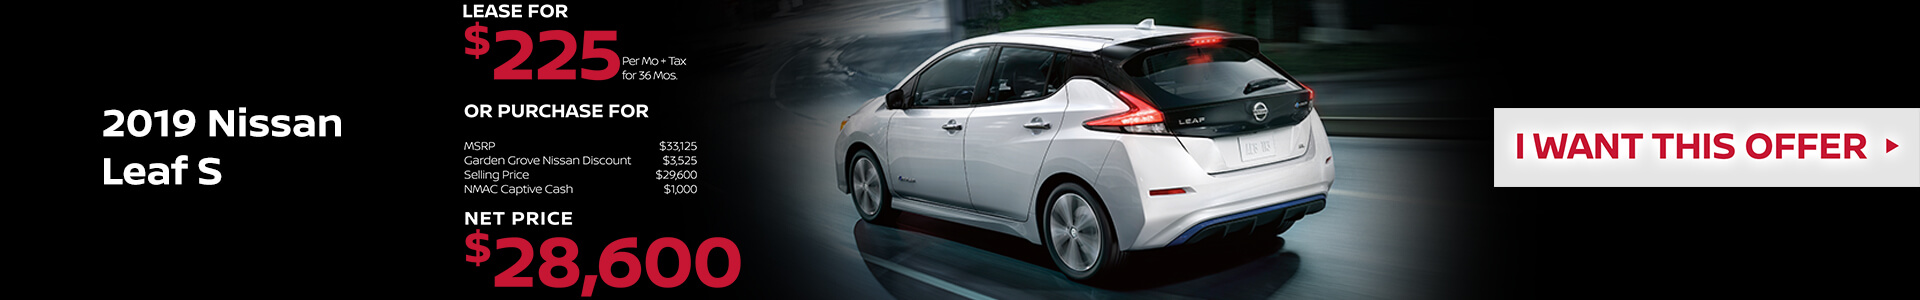 2019 Nissan Leaf Lease for $225